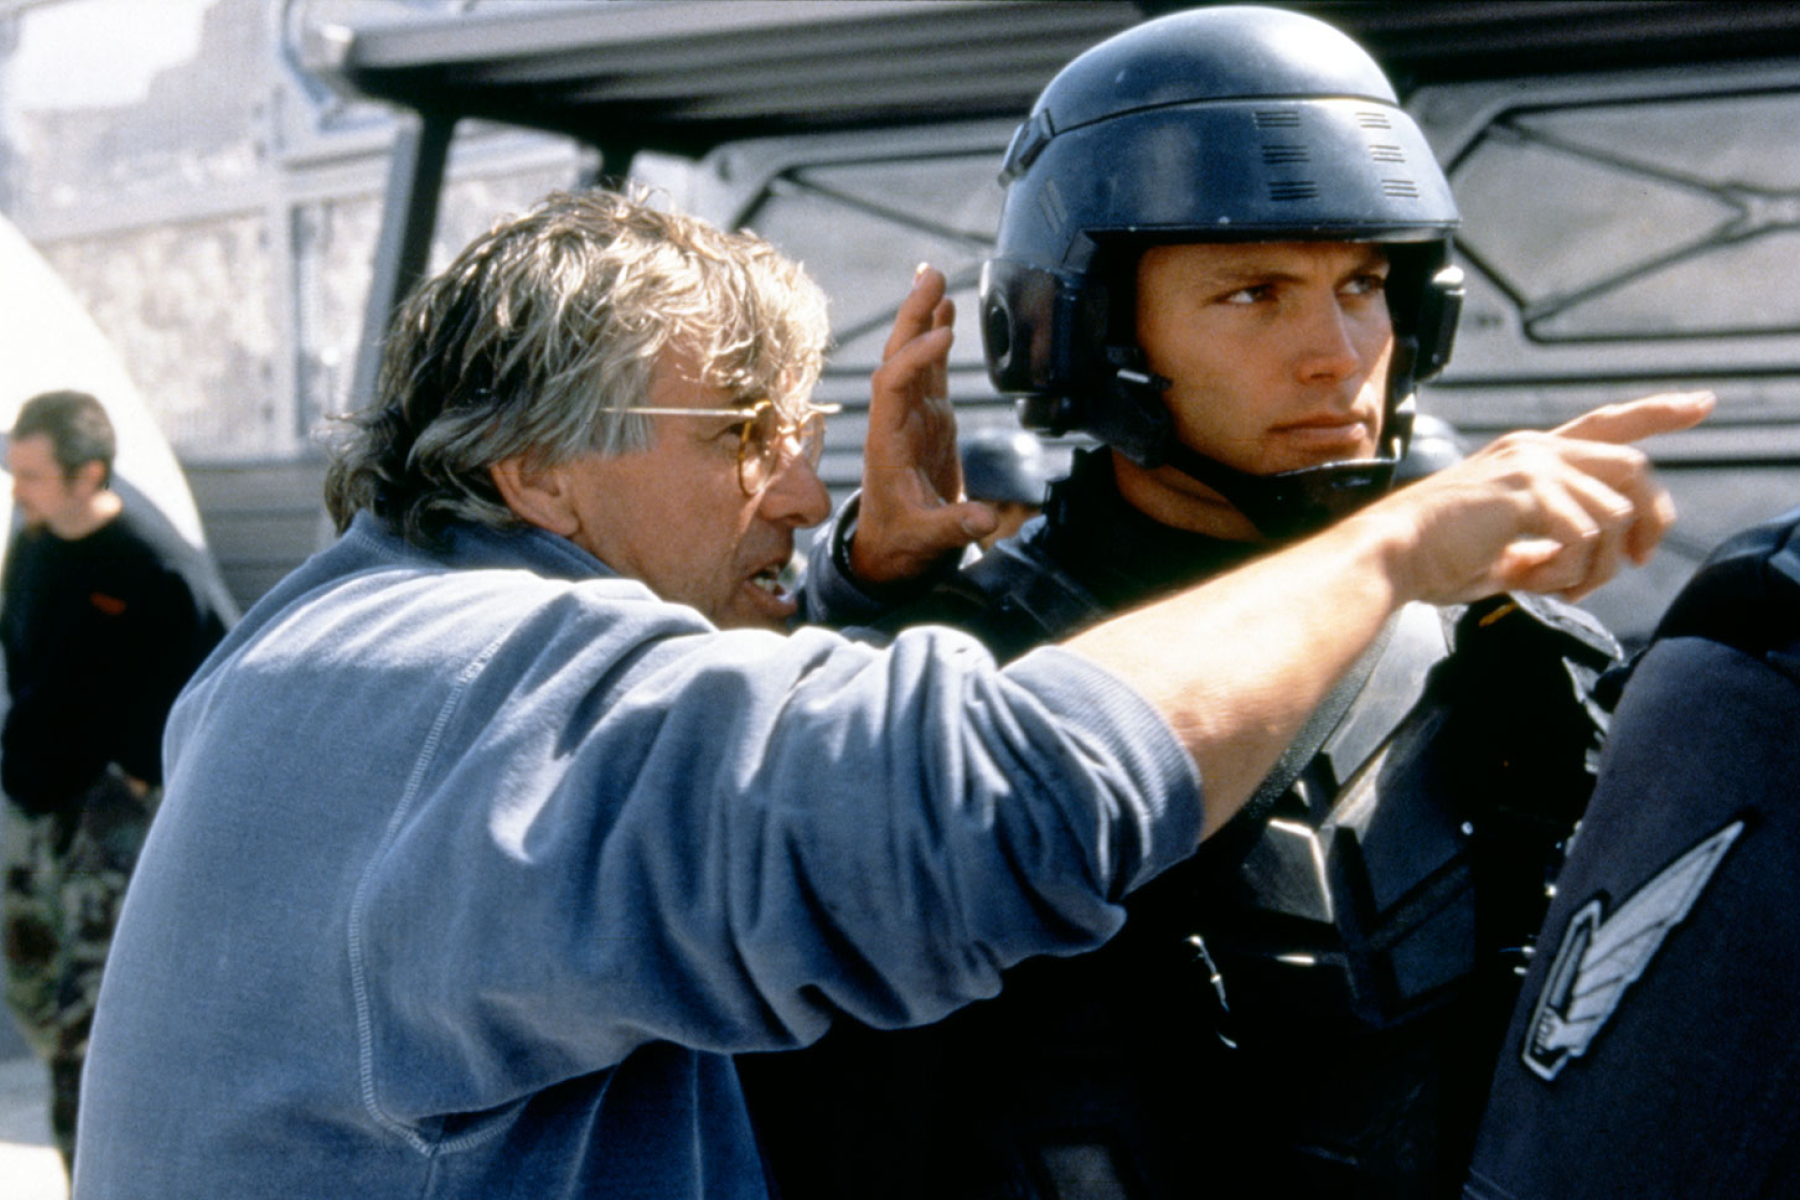 rs paul verhoeven starship troopers 4bdfa700 4ead 46ed a1d8 84244f1ad469 Mark Wahlberg Almost Starred, And More You Never Knew About Starship Troopers